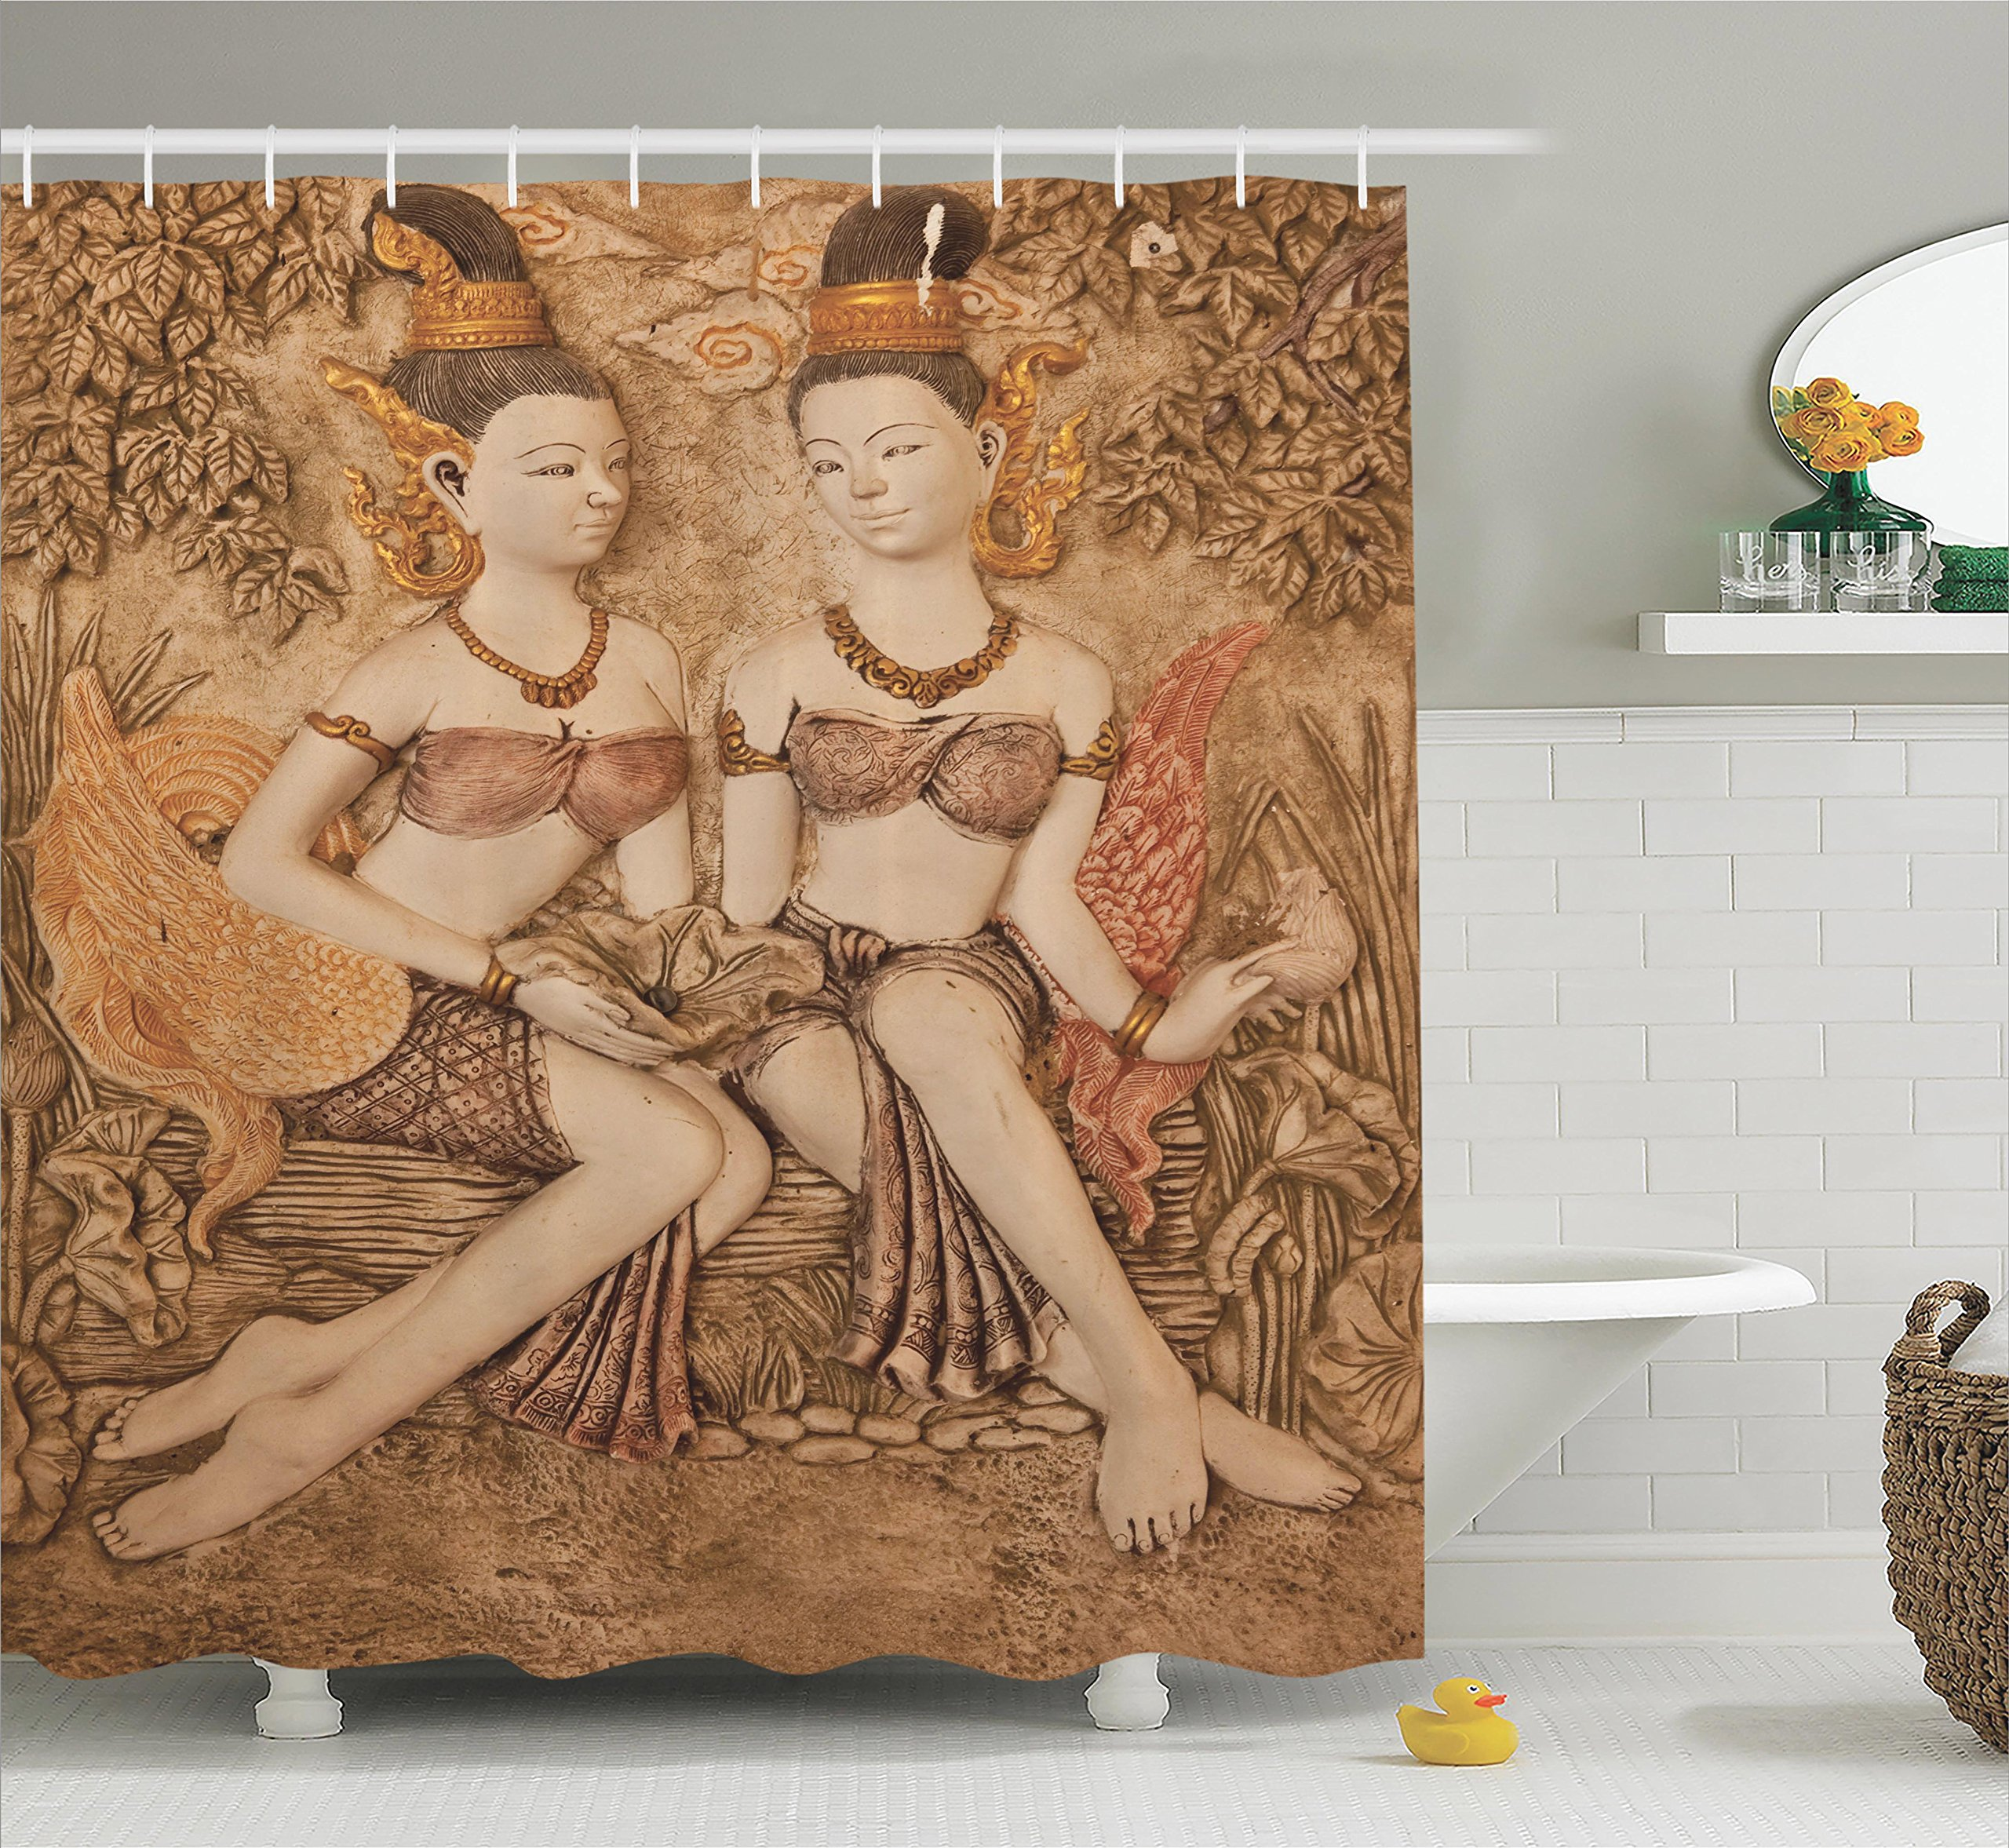 Ambesonne Sculptures Decor Collection, Native Thai Style Molding Art Asian Traditional Attire Temple Culture Image, Polyester Fabric Bathroom Shower Curtain, 84 Inches Extra Long, Bright Gold